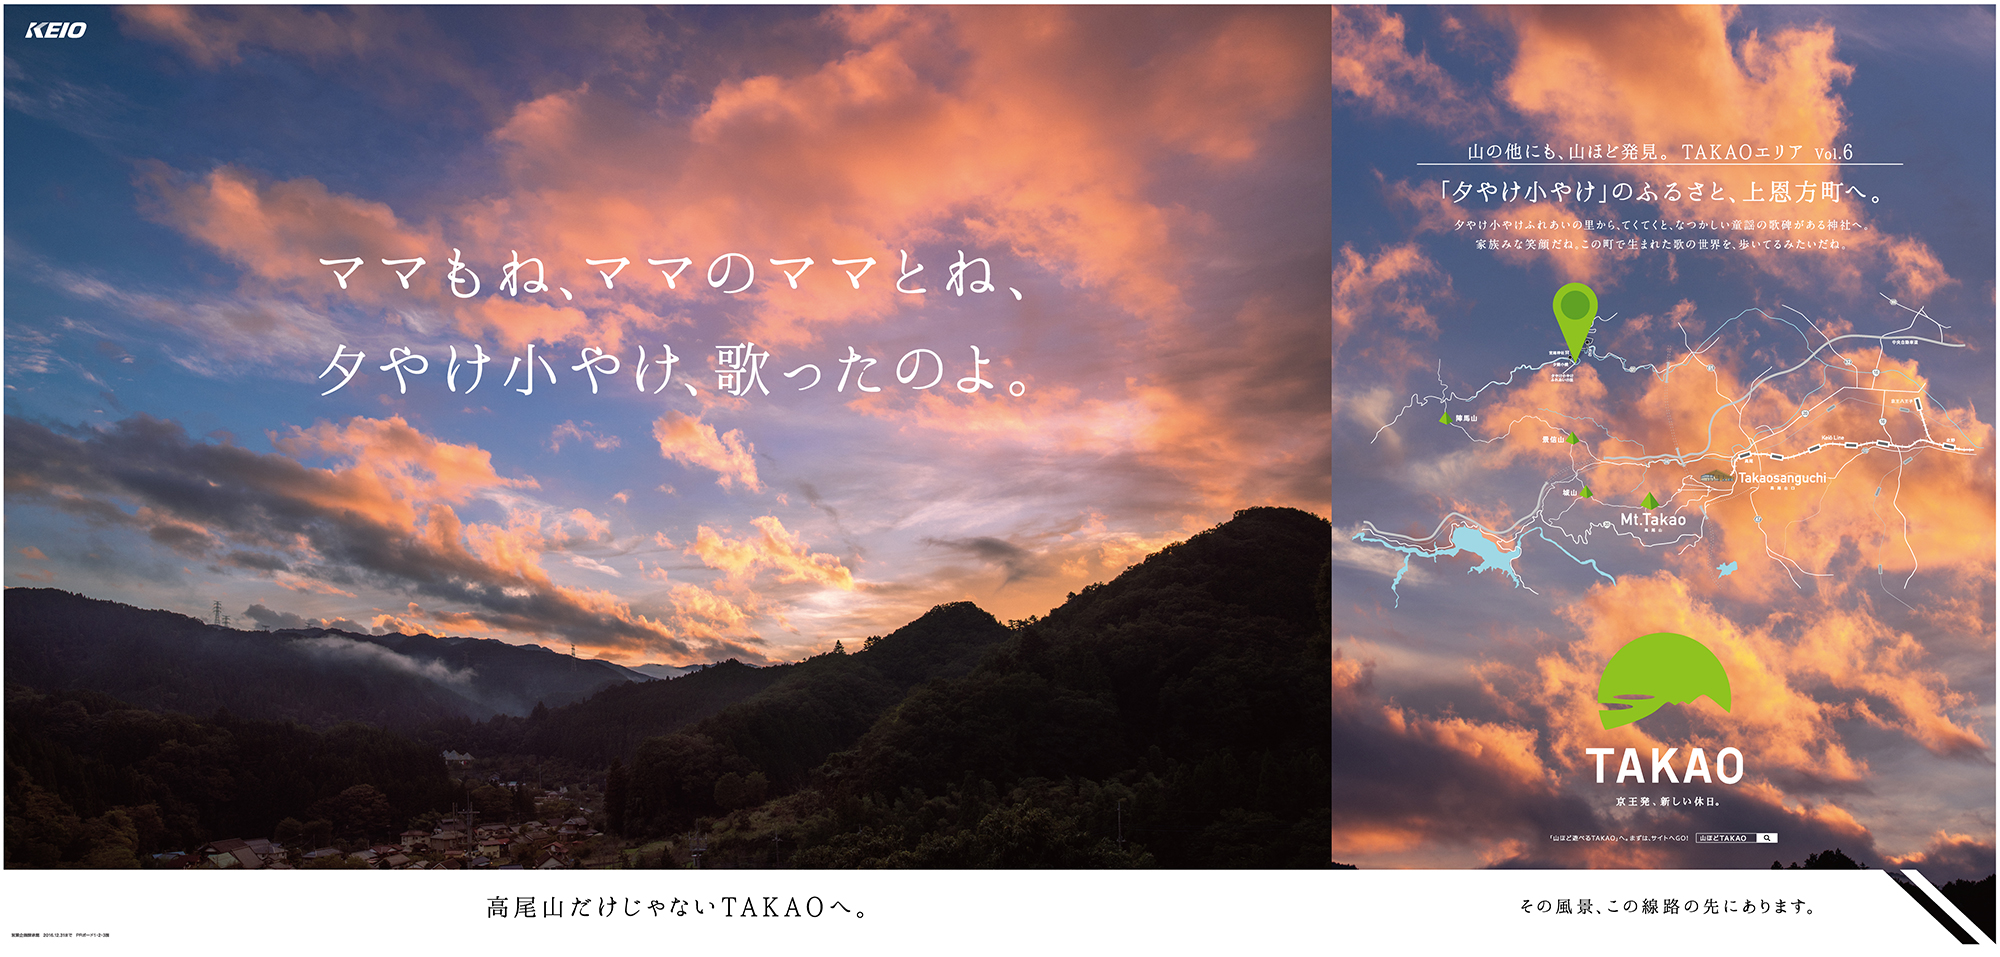 http://www.keio-takao.jp/images/poster_gallery/poster_gallery_img15.jpg